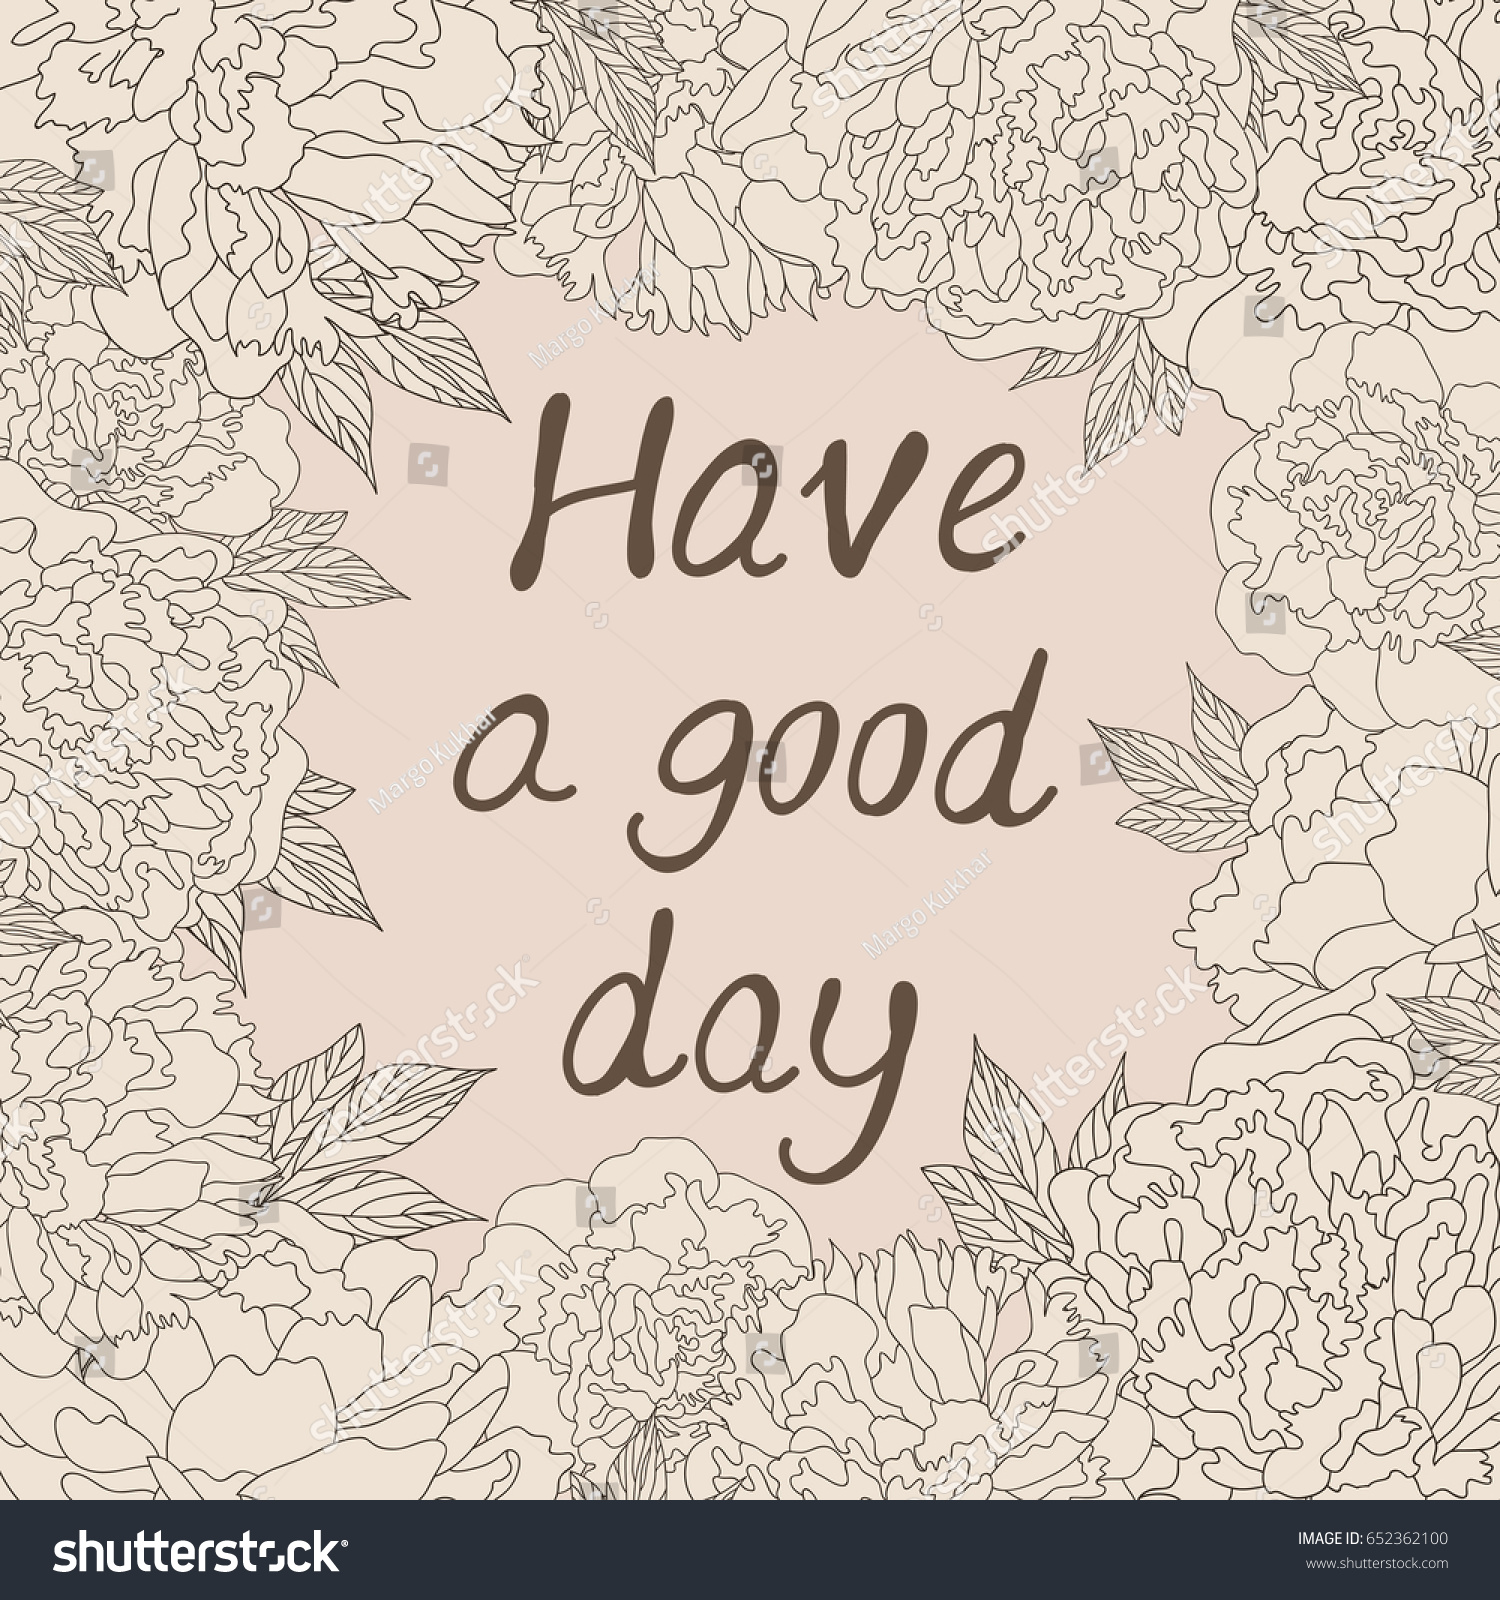 Have good day greeting card hand stock vector 652362100 shutterstock have a good day greeting card hand drawing peonies and lettering typography element for kristyandbryce Gallery